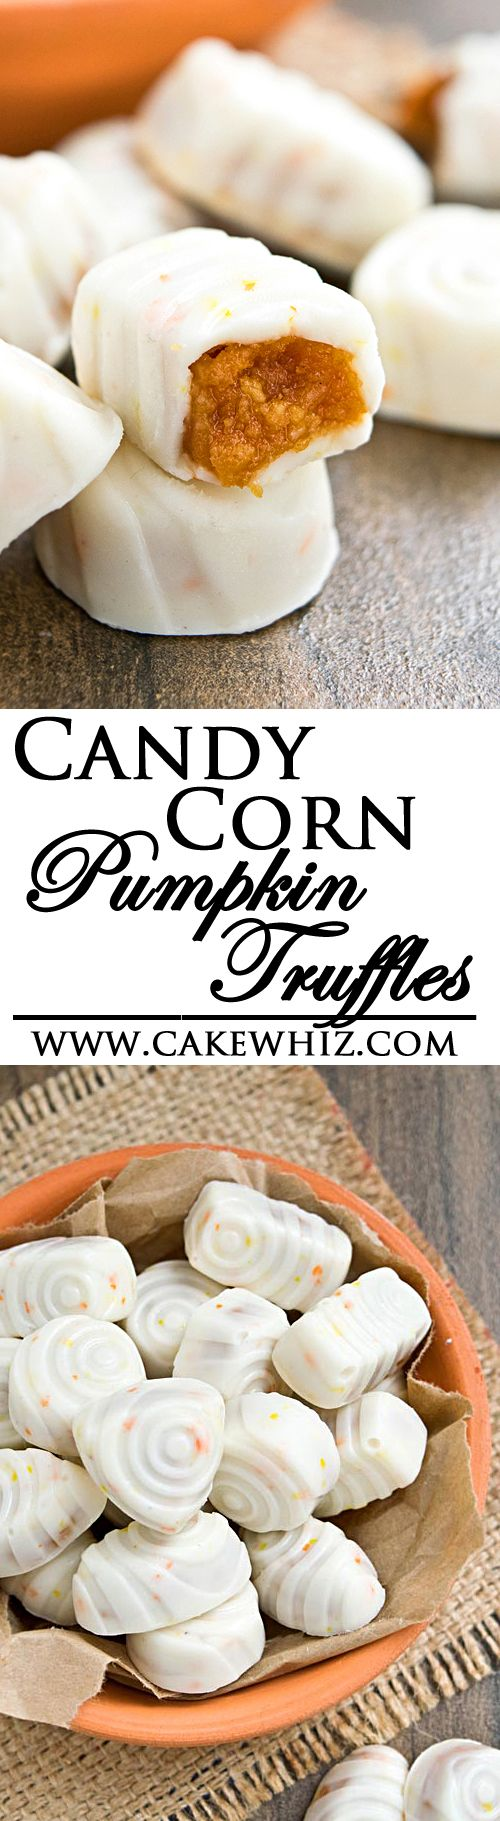 Fudgy, ooey gooey PUMPKIN TRUFFLES covered in candy corn white chocolate. Perfect treat for Fall and great as a homemade gift too! From cakewhiz.com